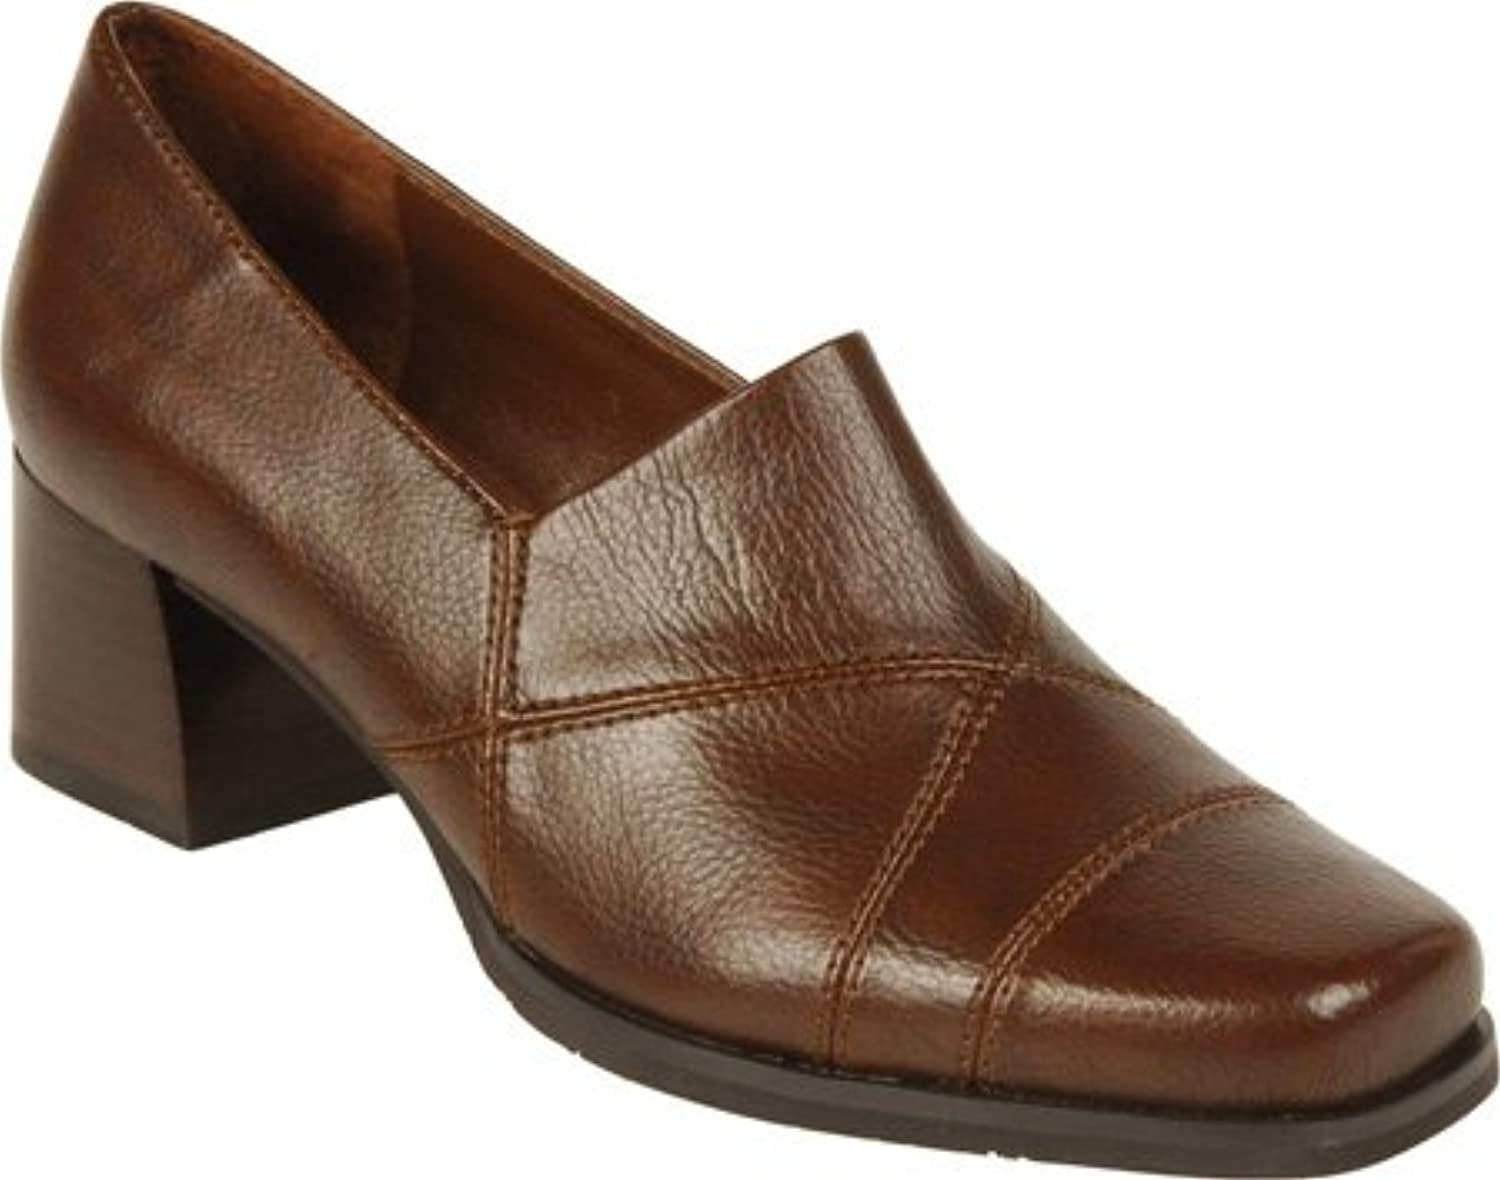 Franco Sarto Womens Roxy Square Toe Classic Pumps